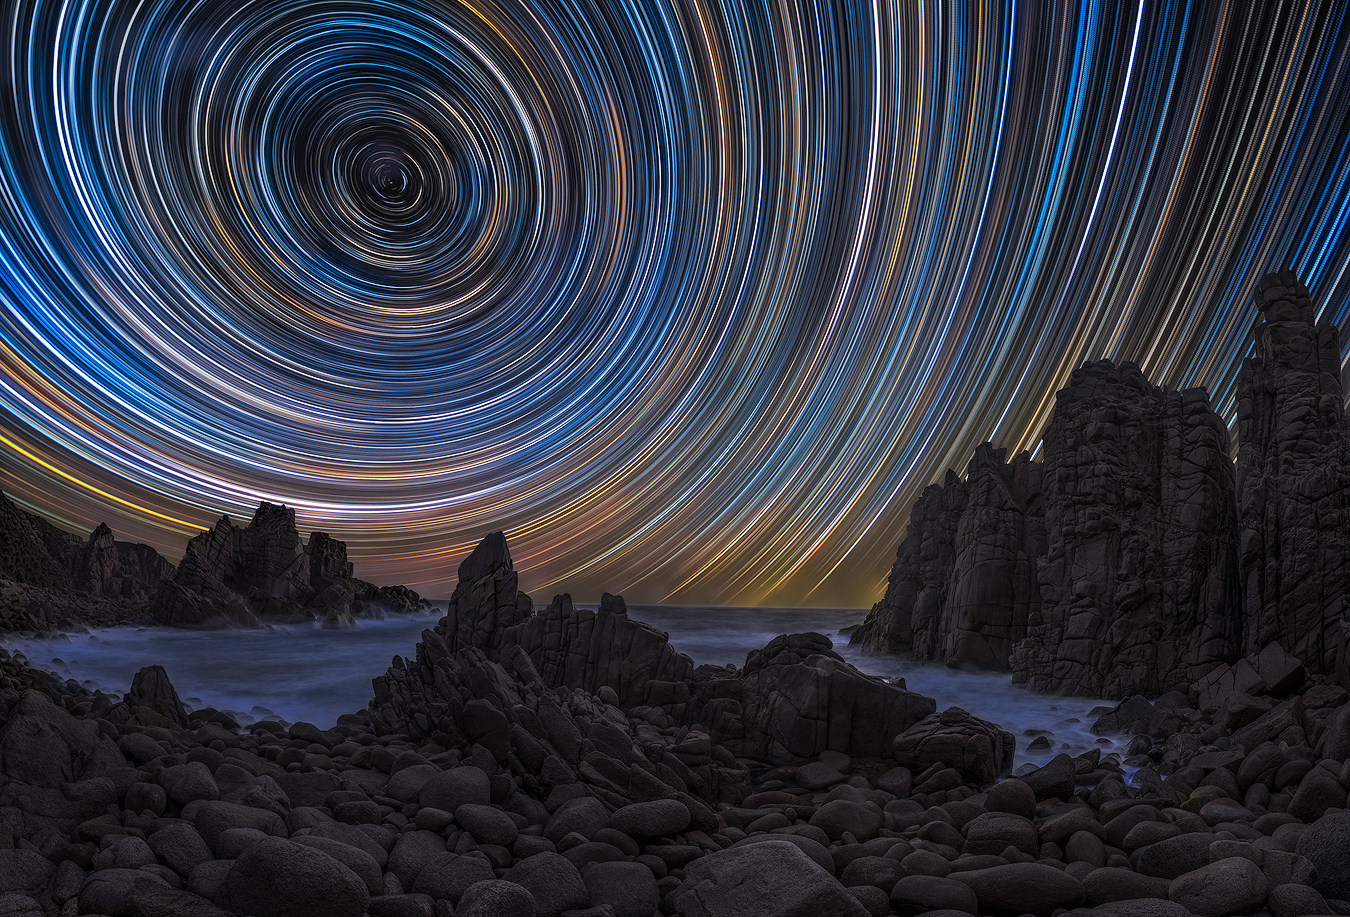 Astrophotography Workshop | Night Sky Star trail Phillip Island Melbourne | We Are Raw Photography | Cape Woolamai, Pinnacles VIC. Australia